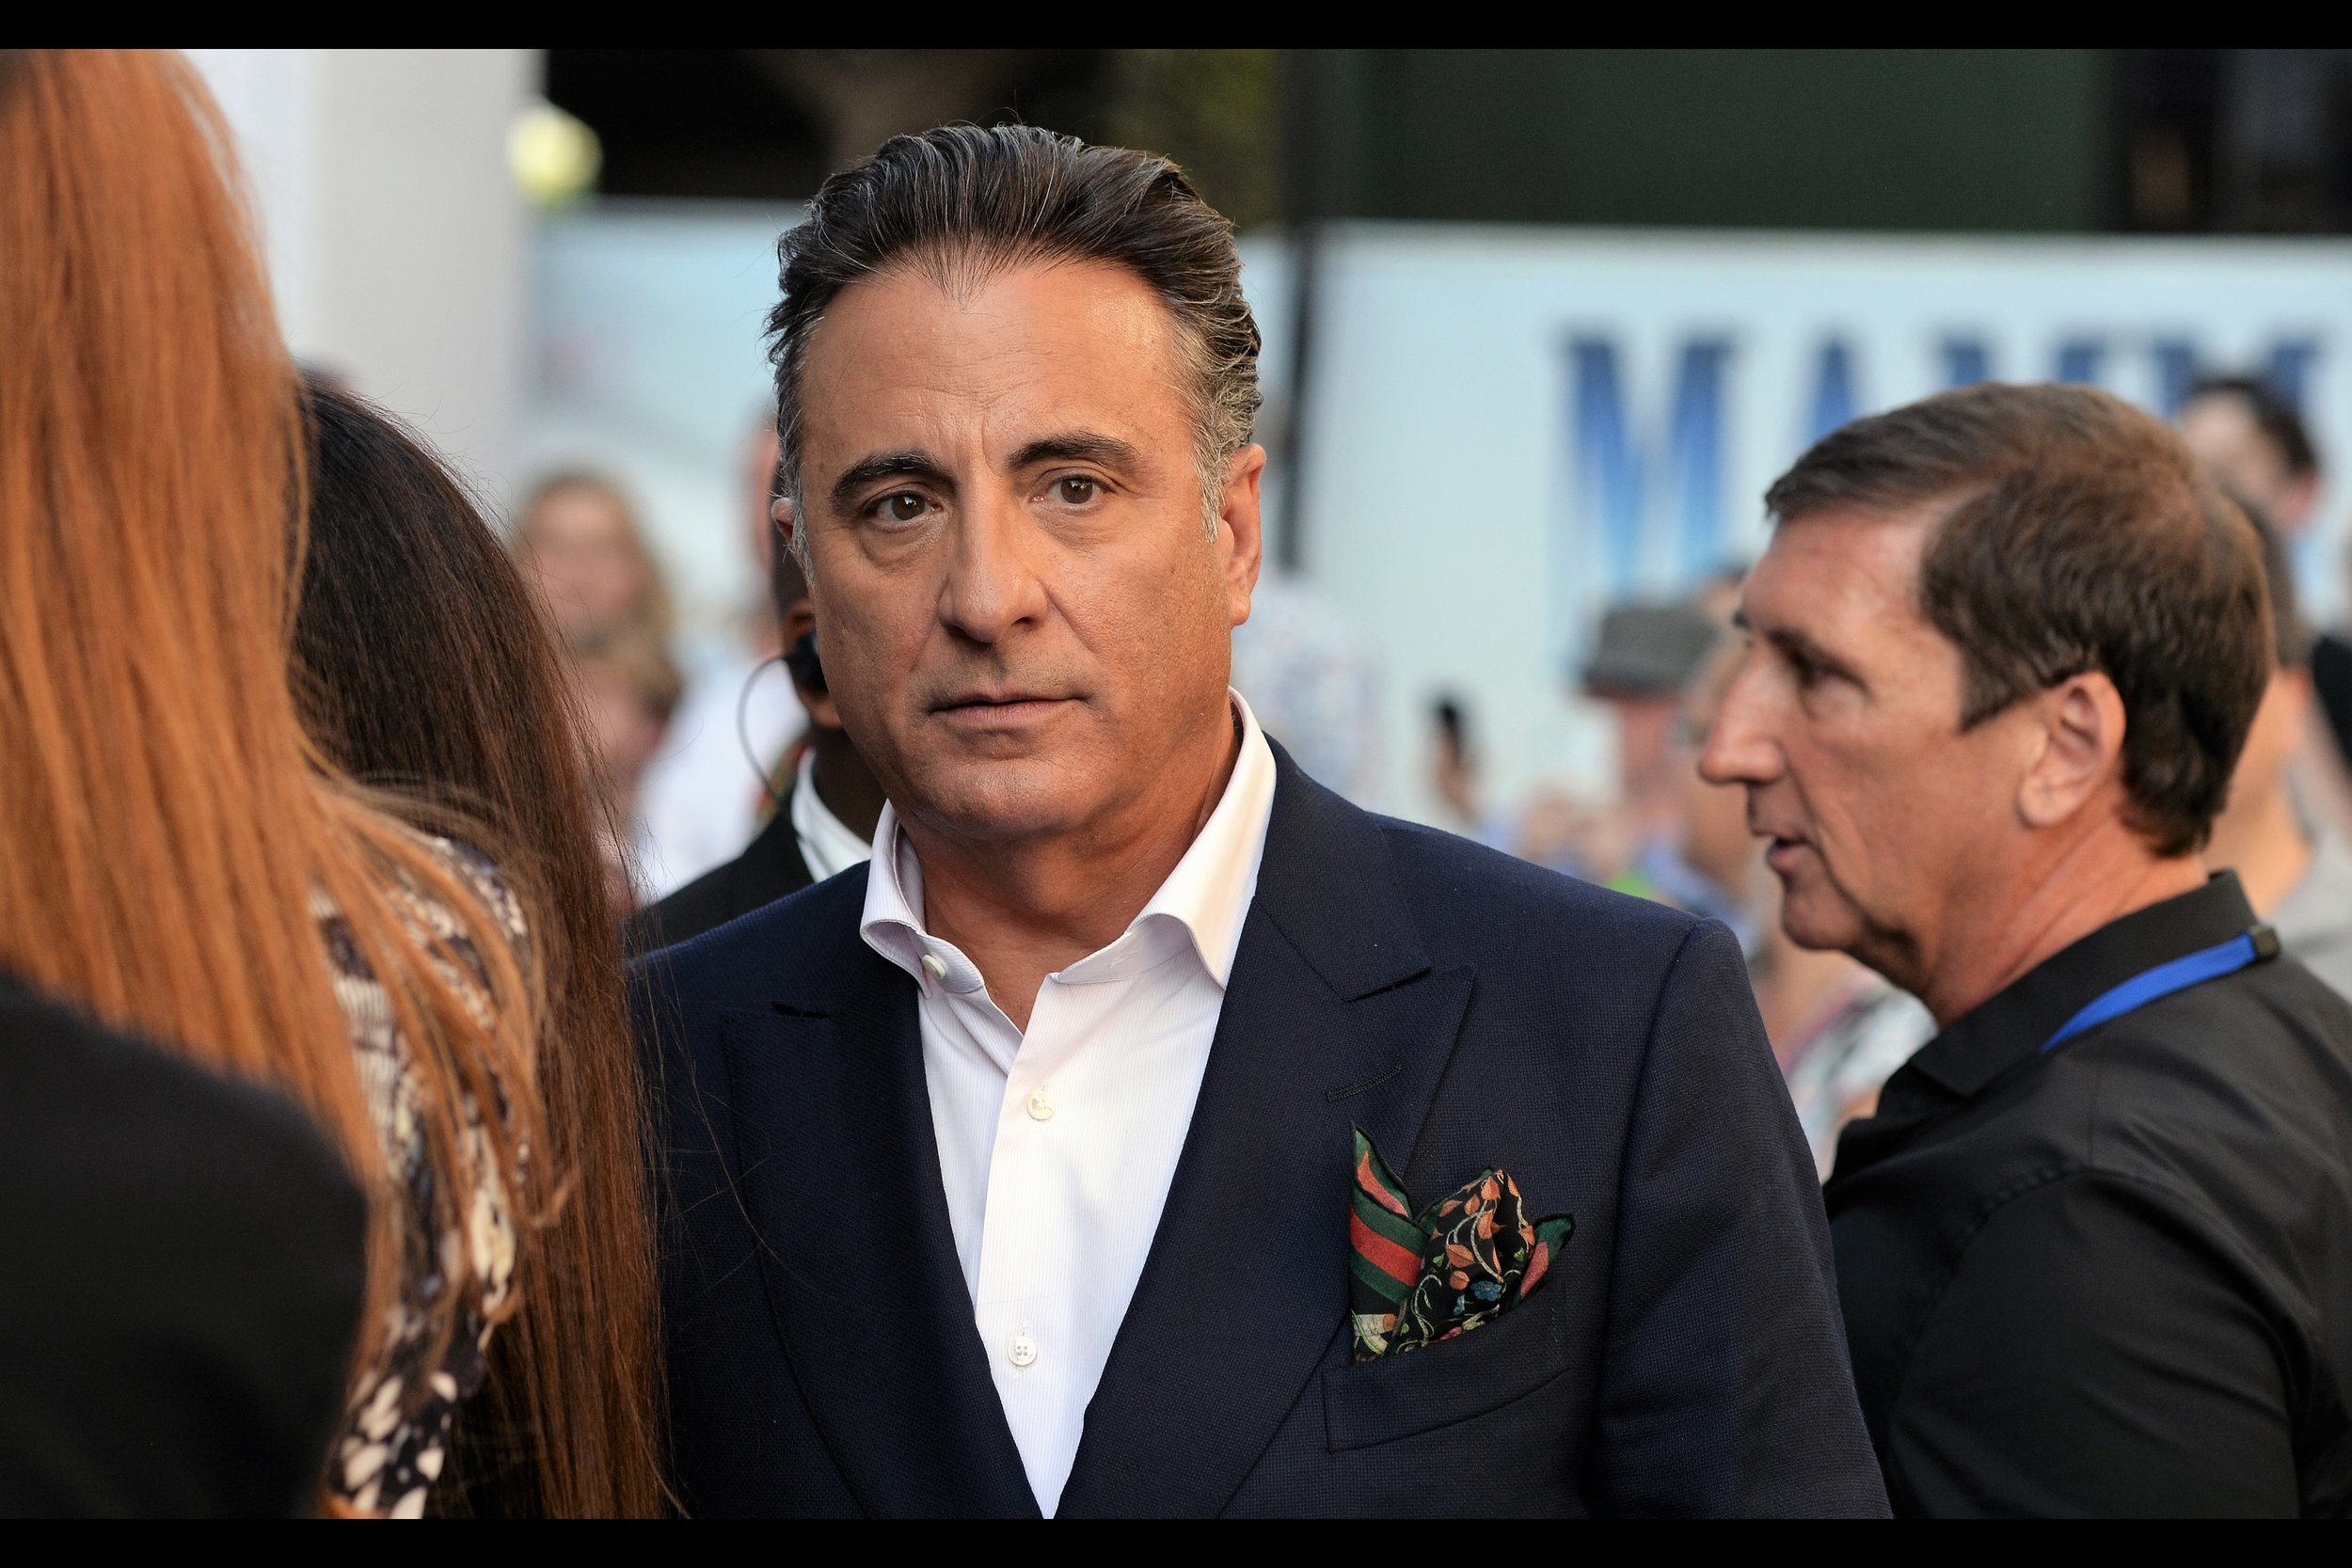 Andy Garcia had promised the girls to my right that he'd be back to sign. But as mentioned, many people say that.